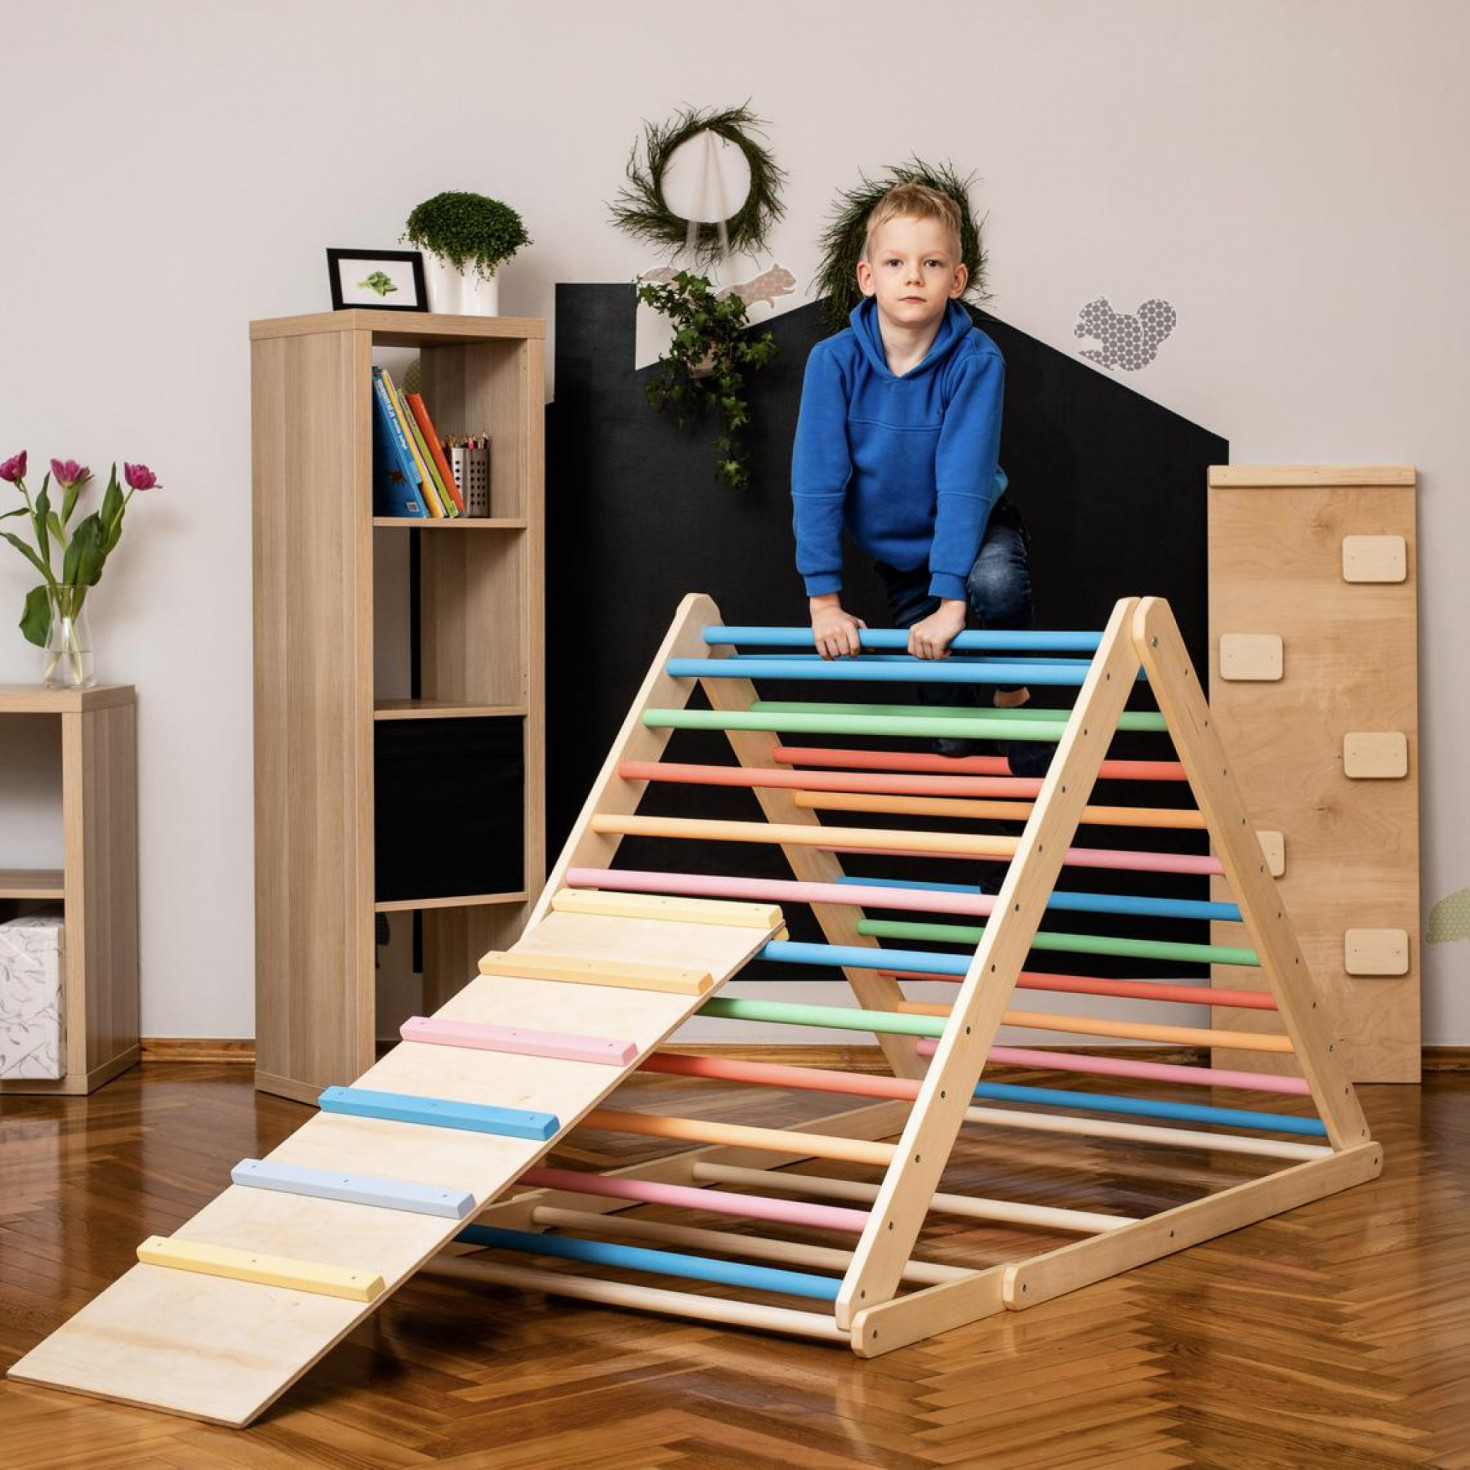 A child standing on a wooden triangle climber with rainbow-colored rungs